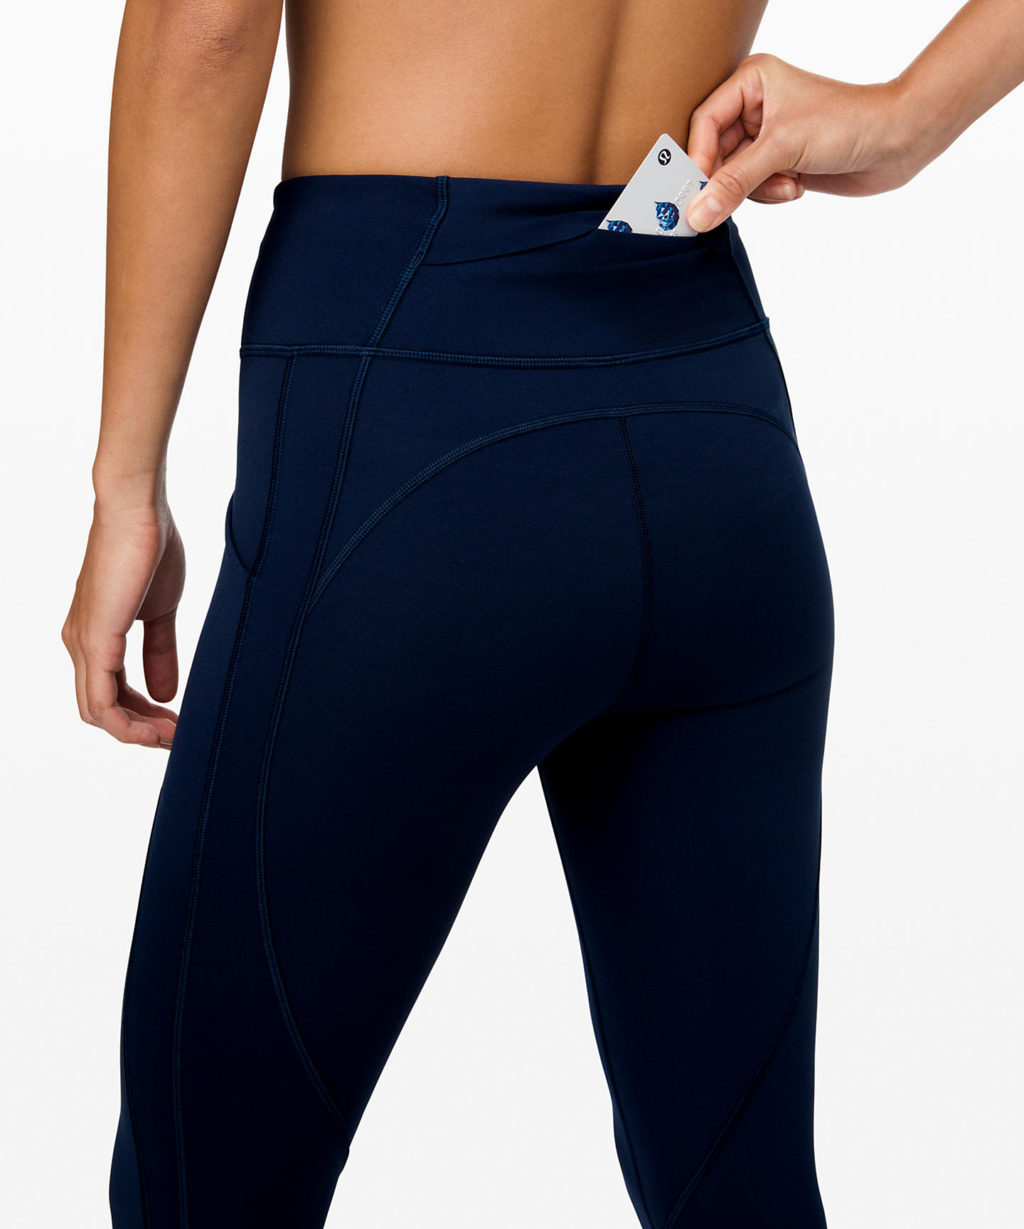 Lululemon time To Sweat crop Review